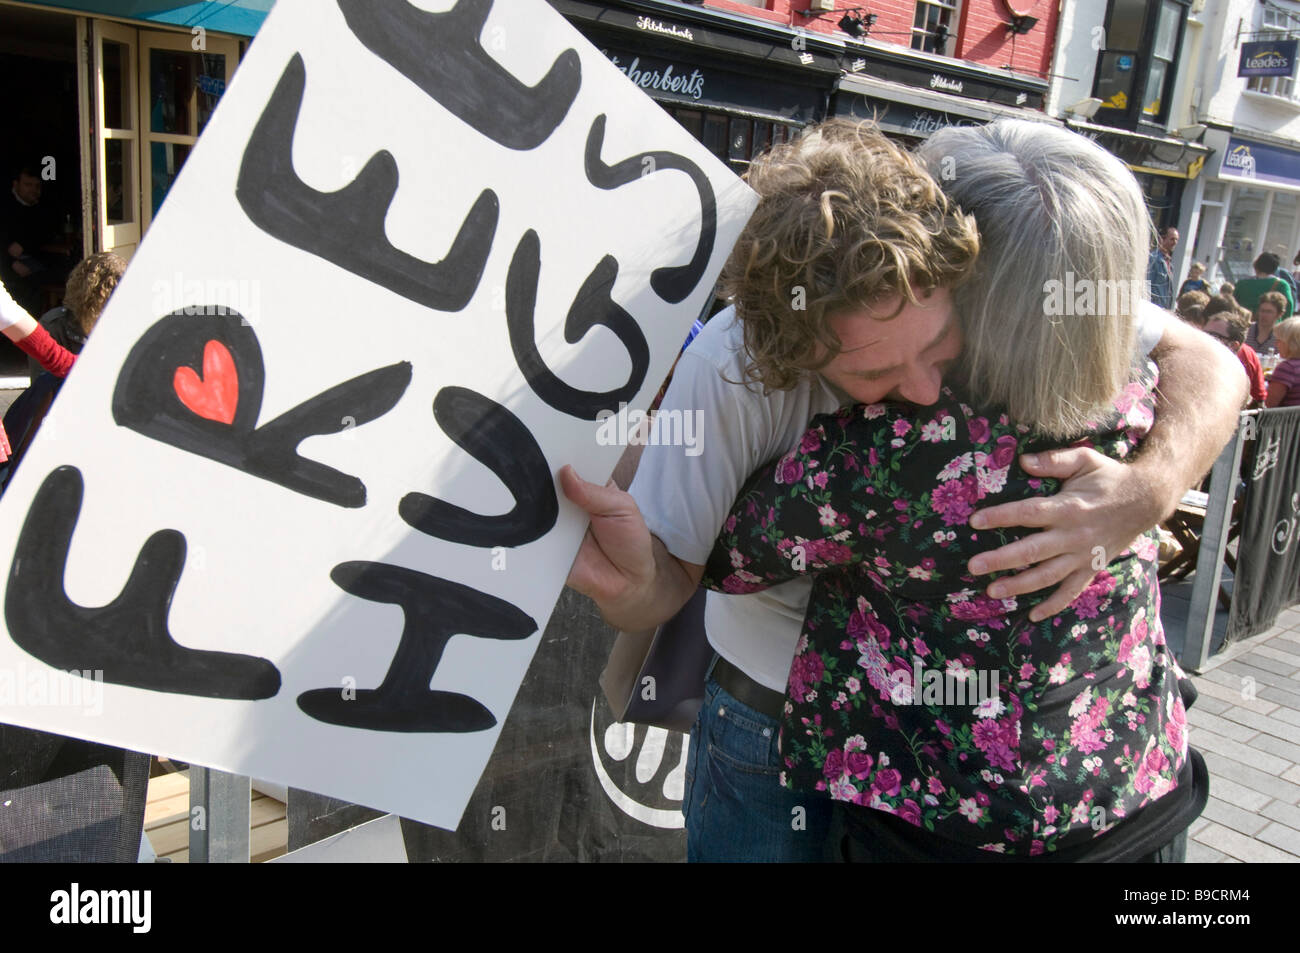 A woman hugs a man holding a sign offering Free Hugs - Stock Image